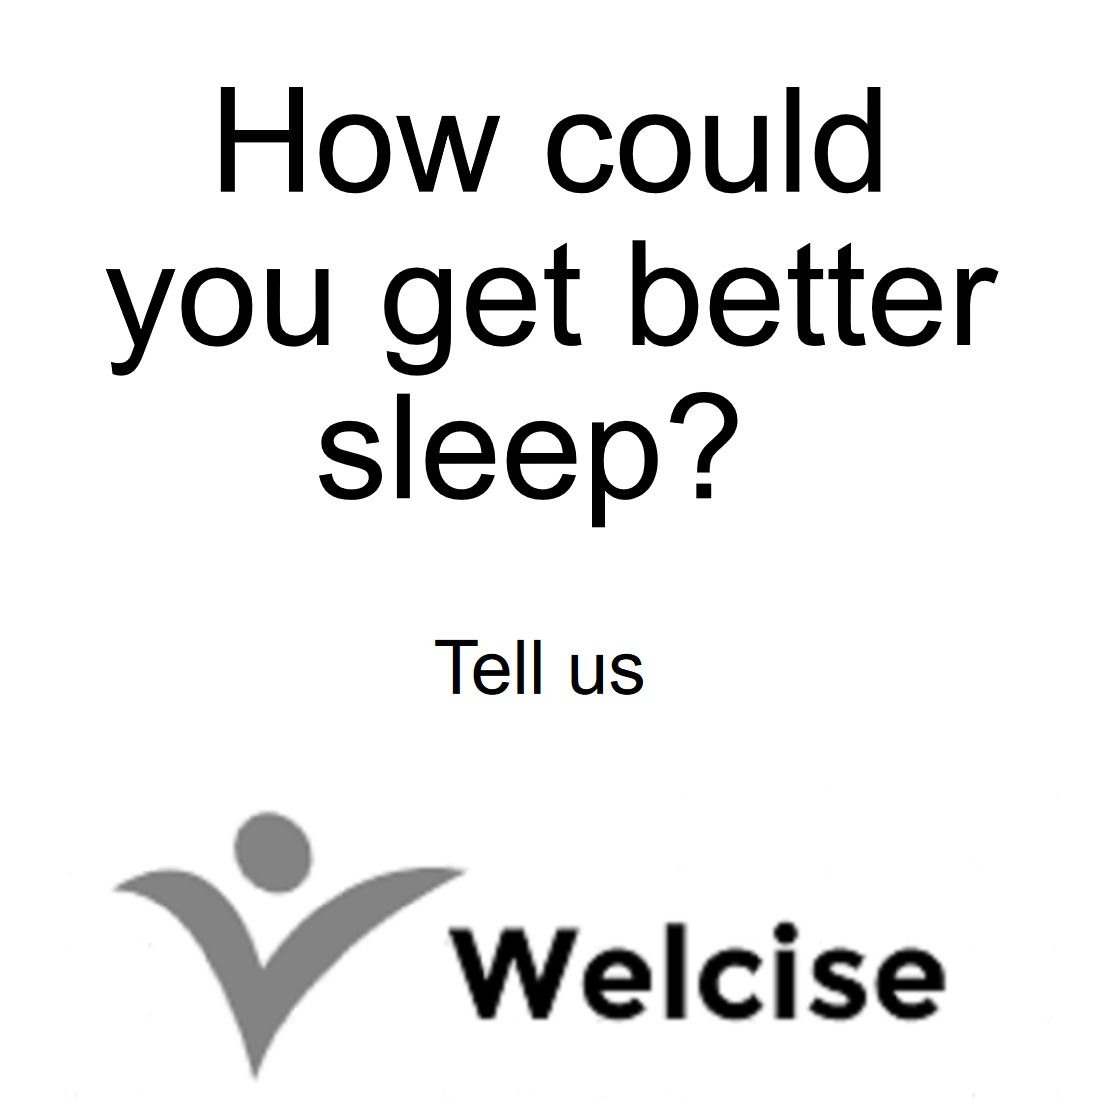 #Welcise #health #healthyathome #exercise #healthyeating #goodsleep #healthylifestyle #movement #stronger #motivation #habits #life #healthy #betterseeppic.twitter.com/gQ6o11pExo